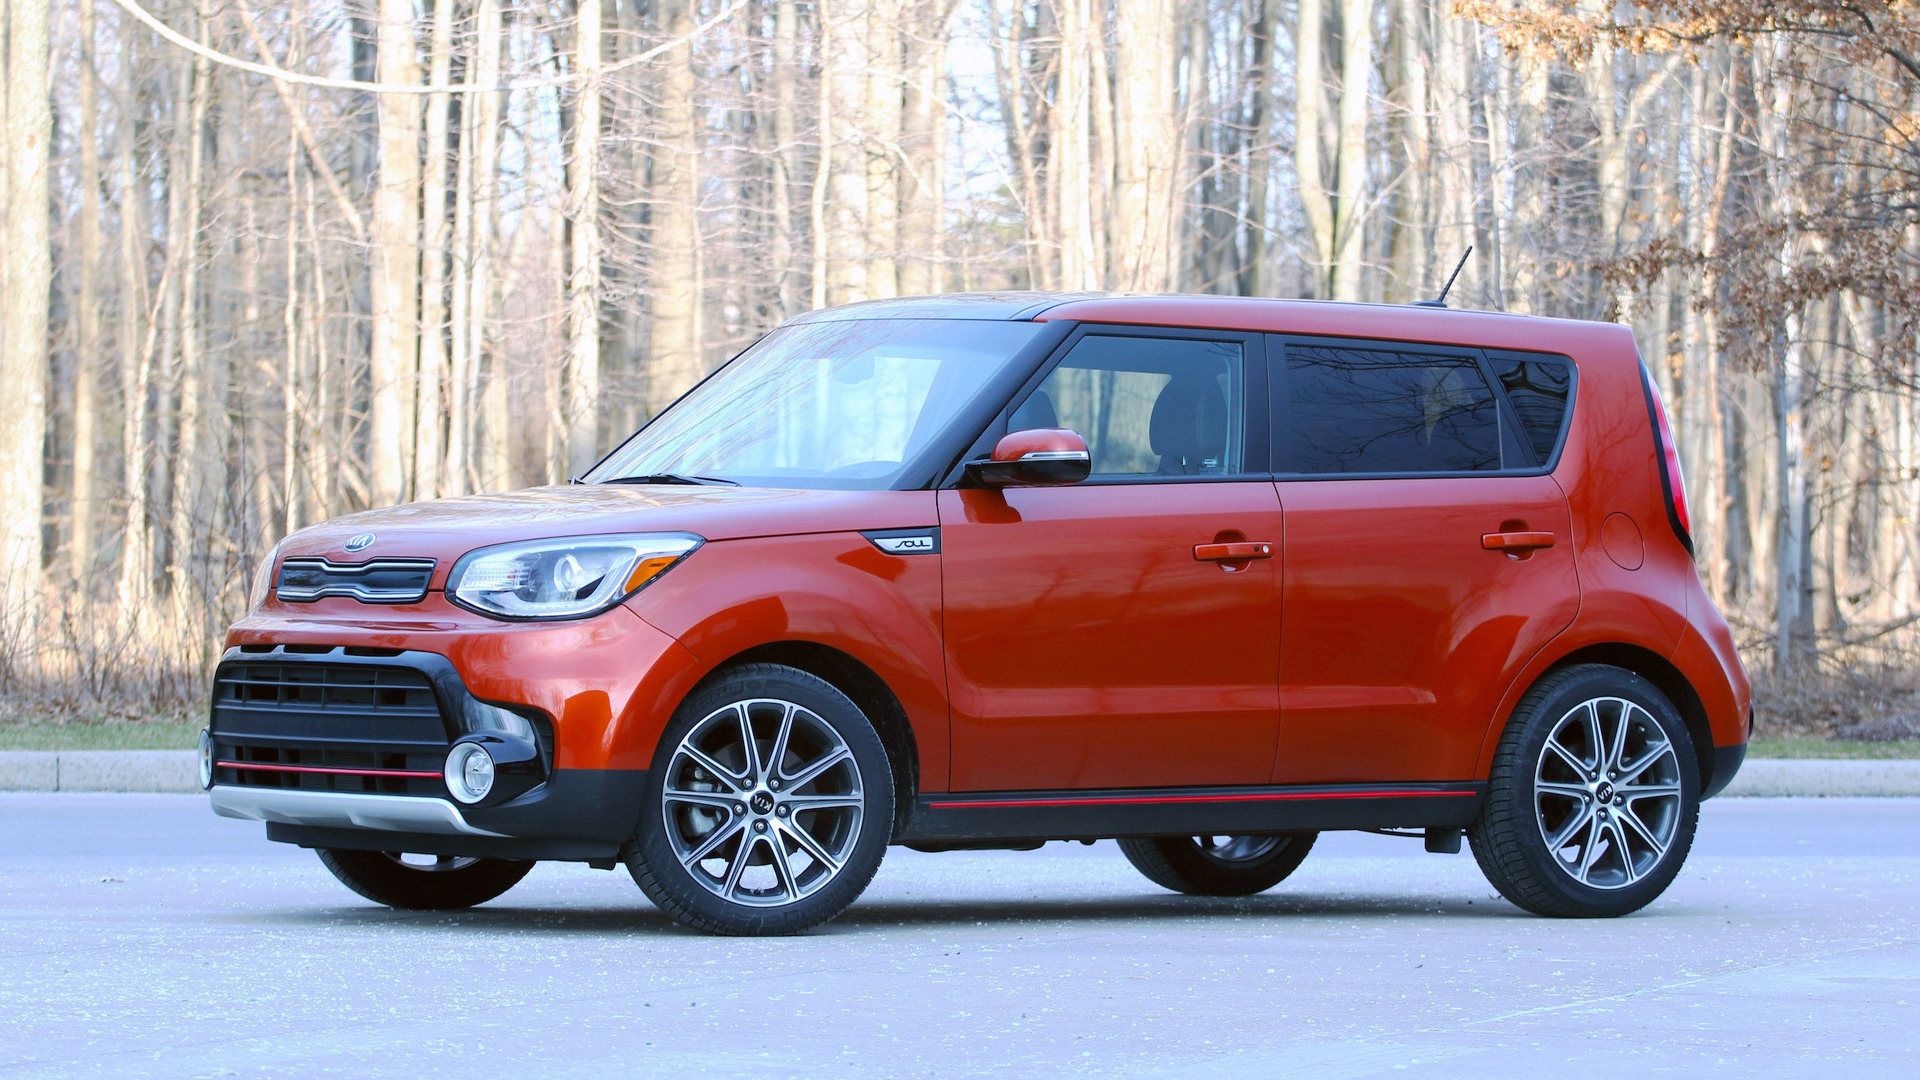 Luxury 2017 Kia Soul Review Getting Better All The Time